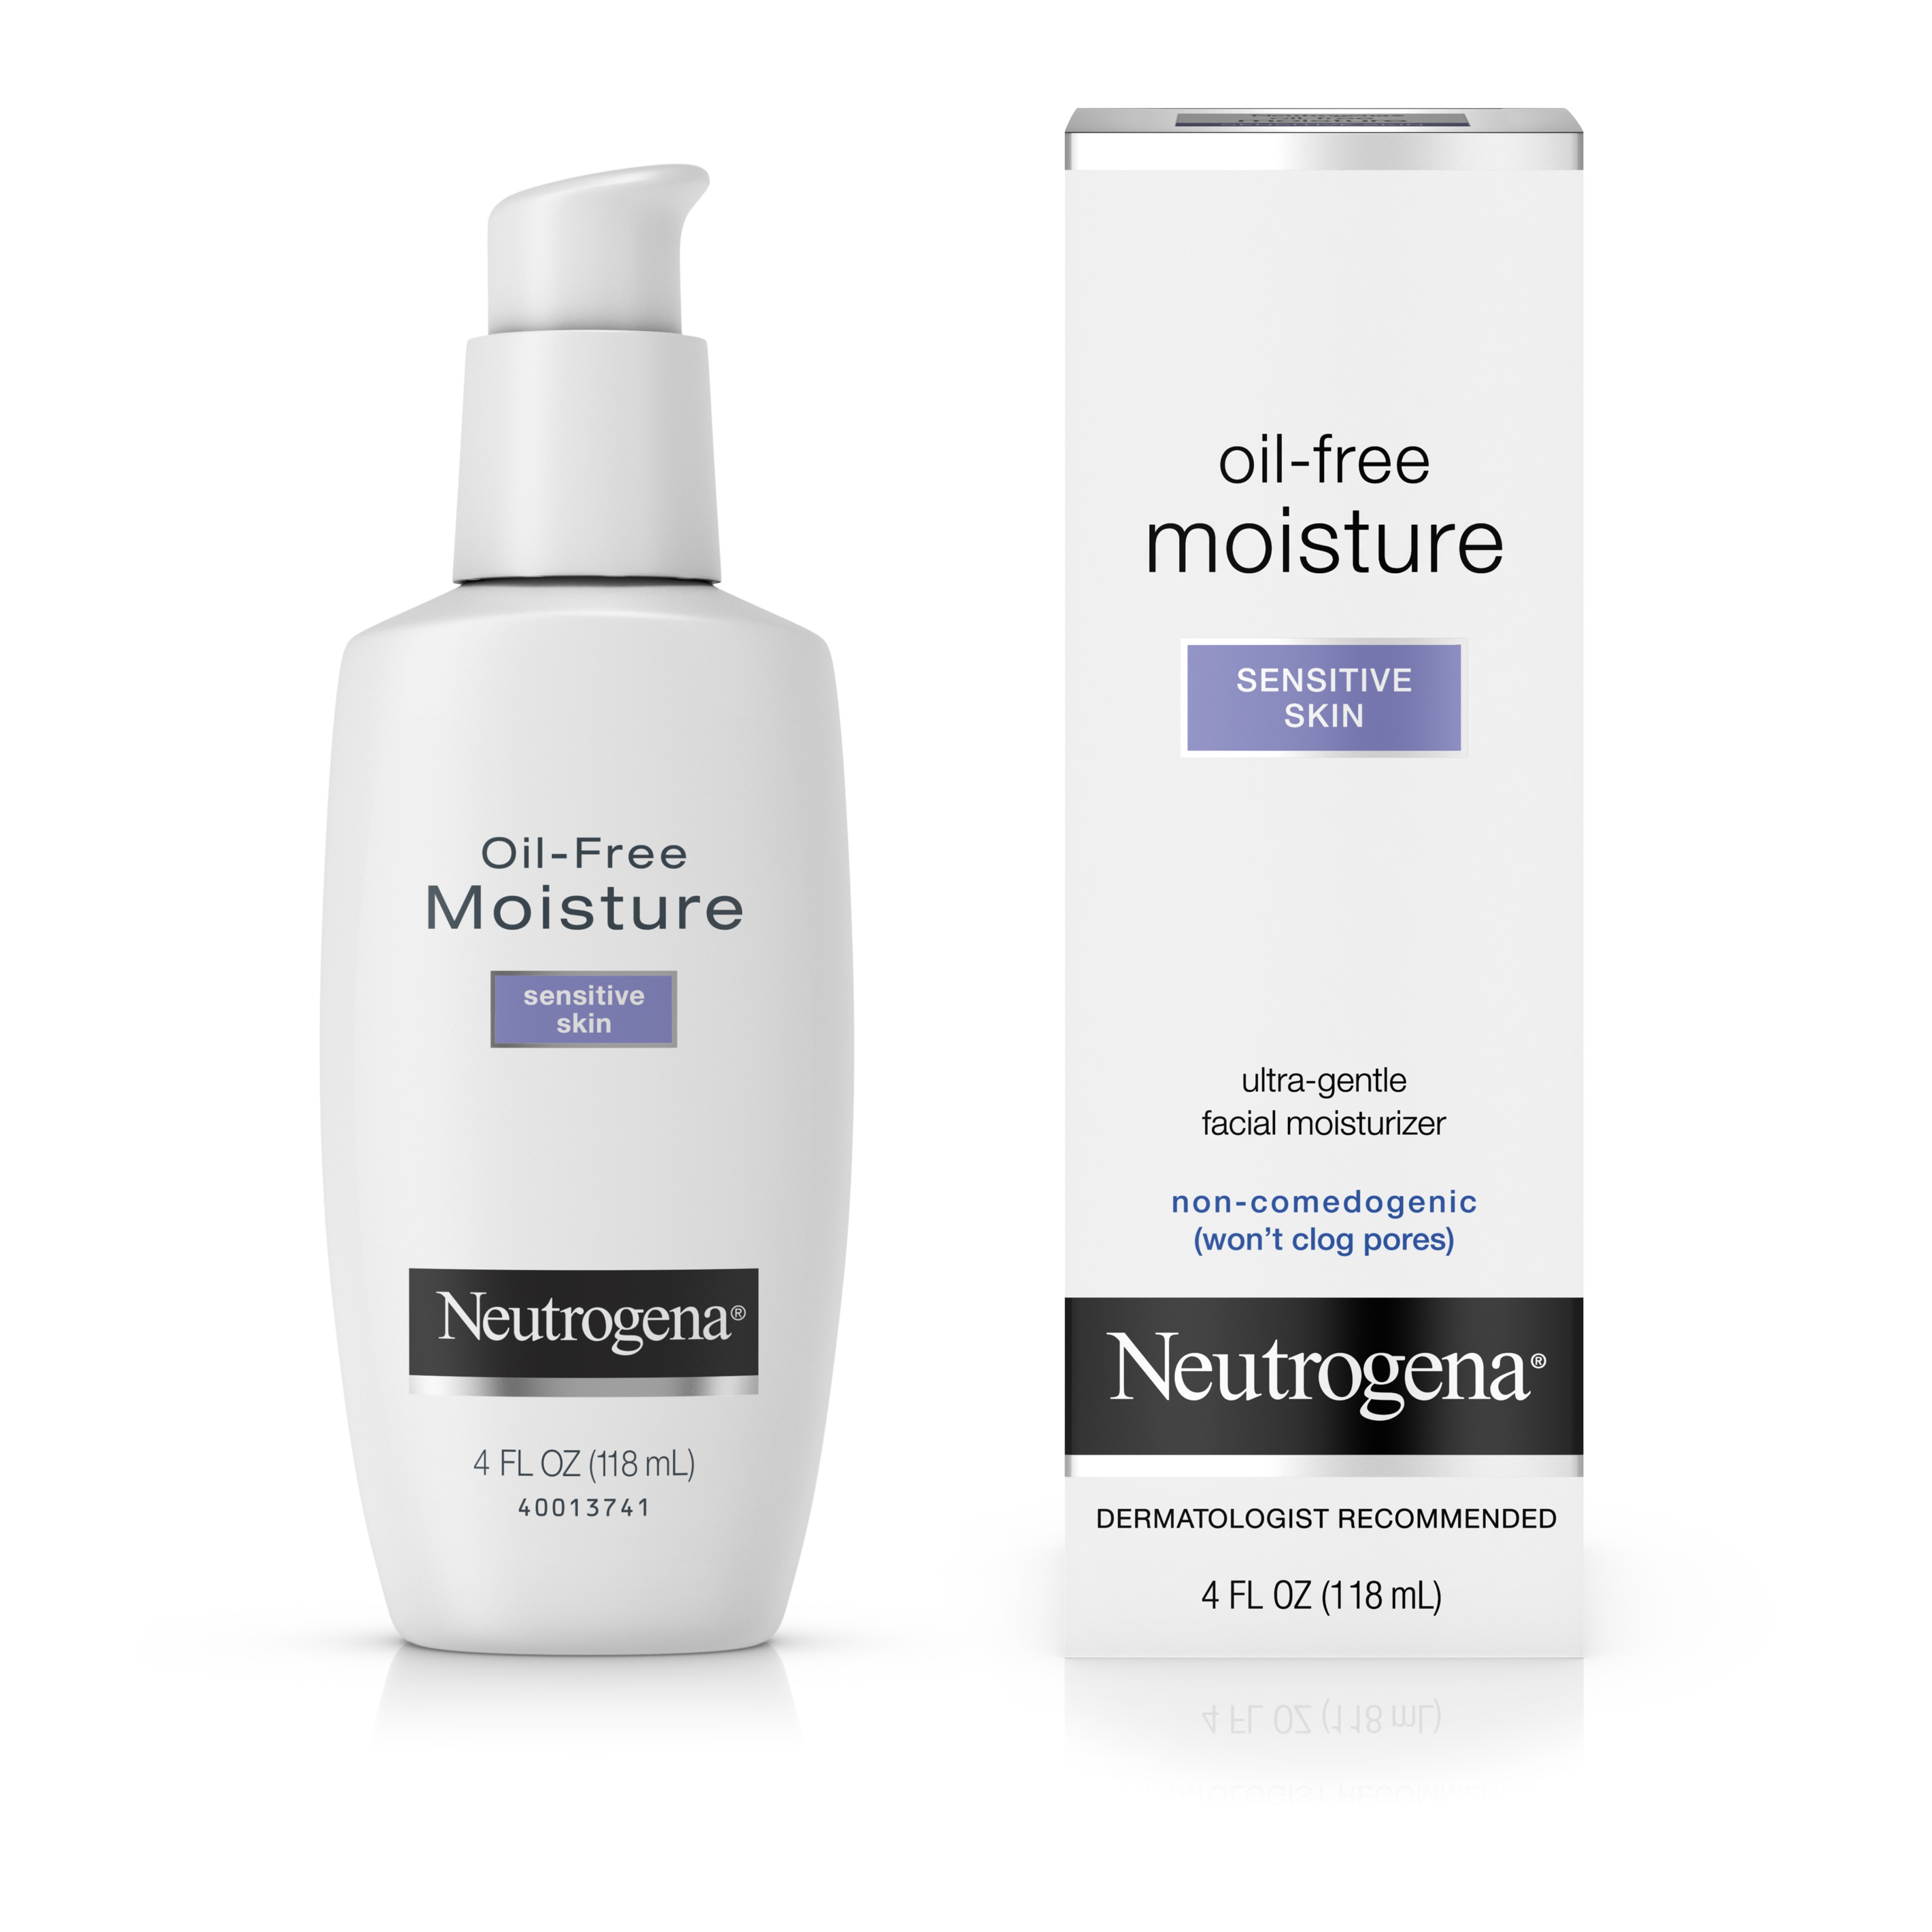 Neutrogena Oil-Free Daily Sensitive Skin Facial Moisturizer, 4 fl. oz